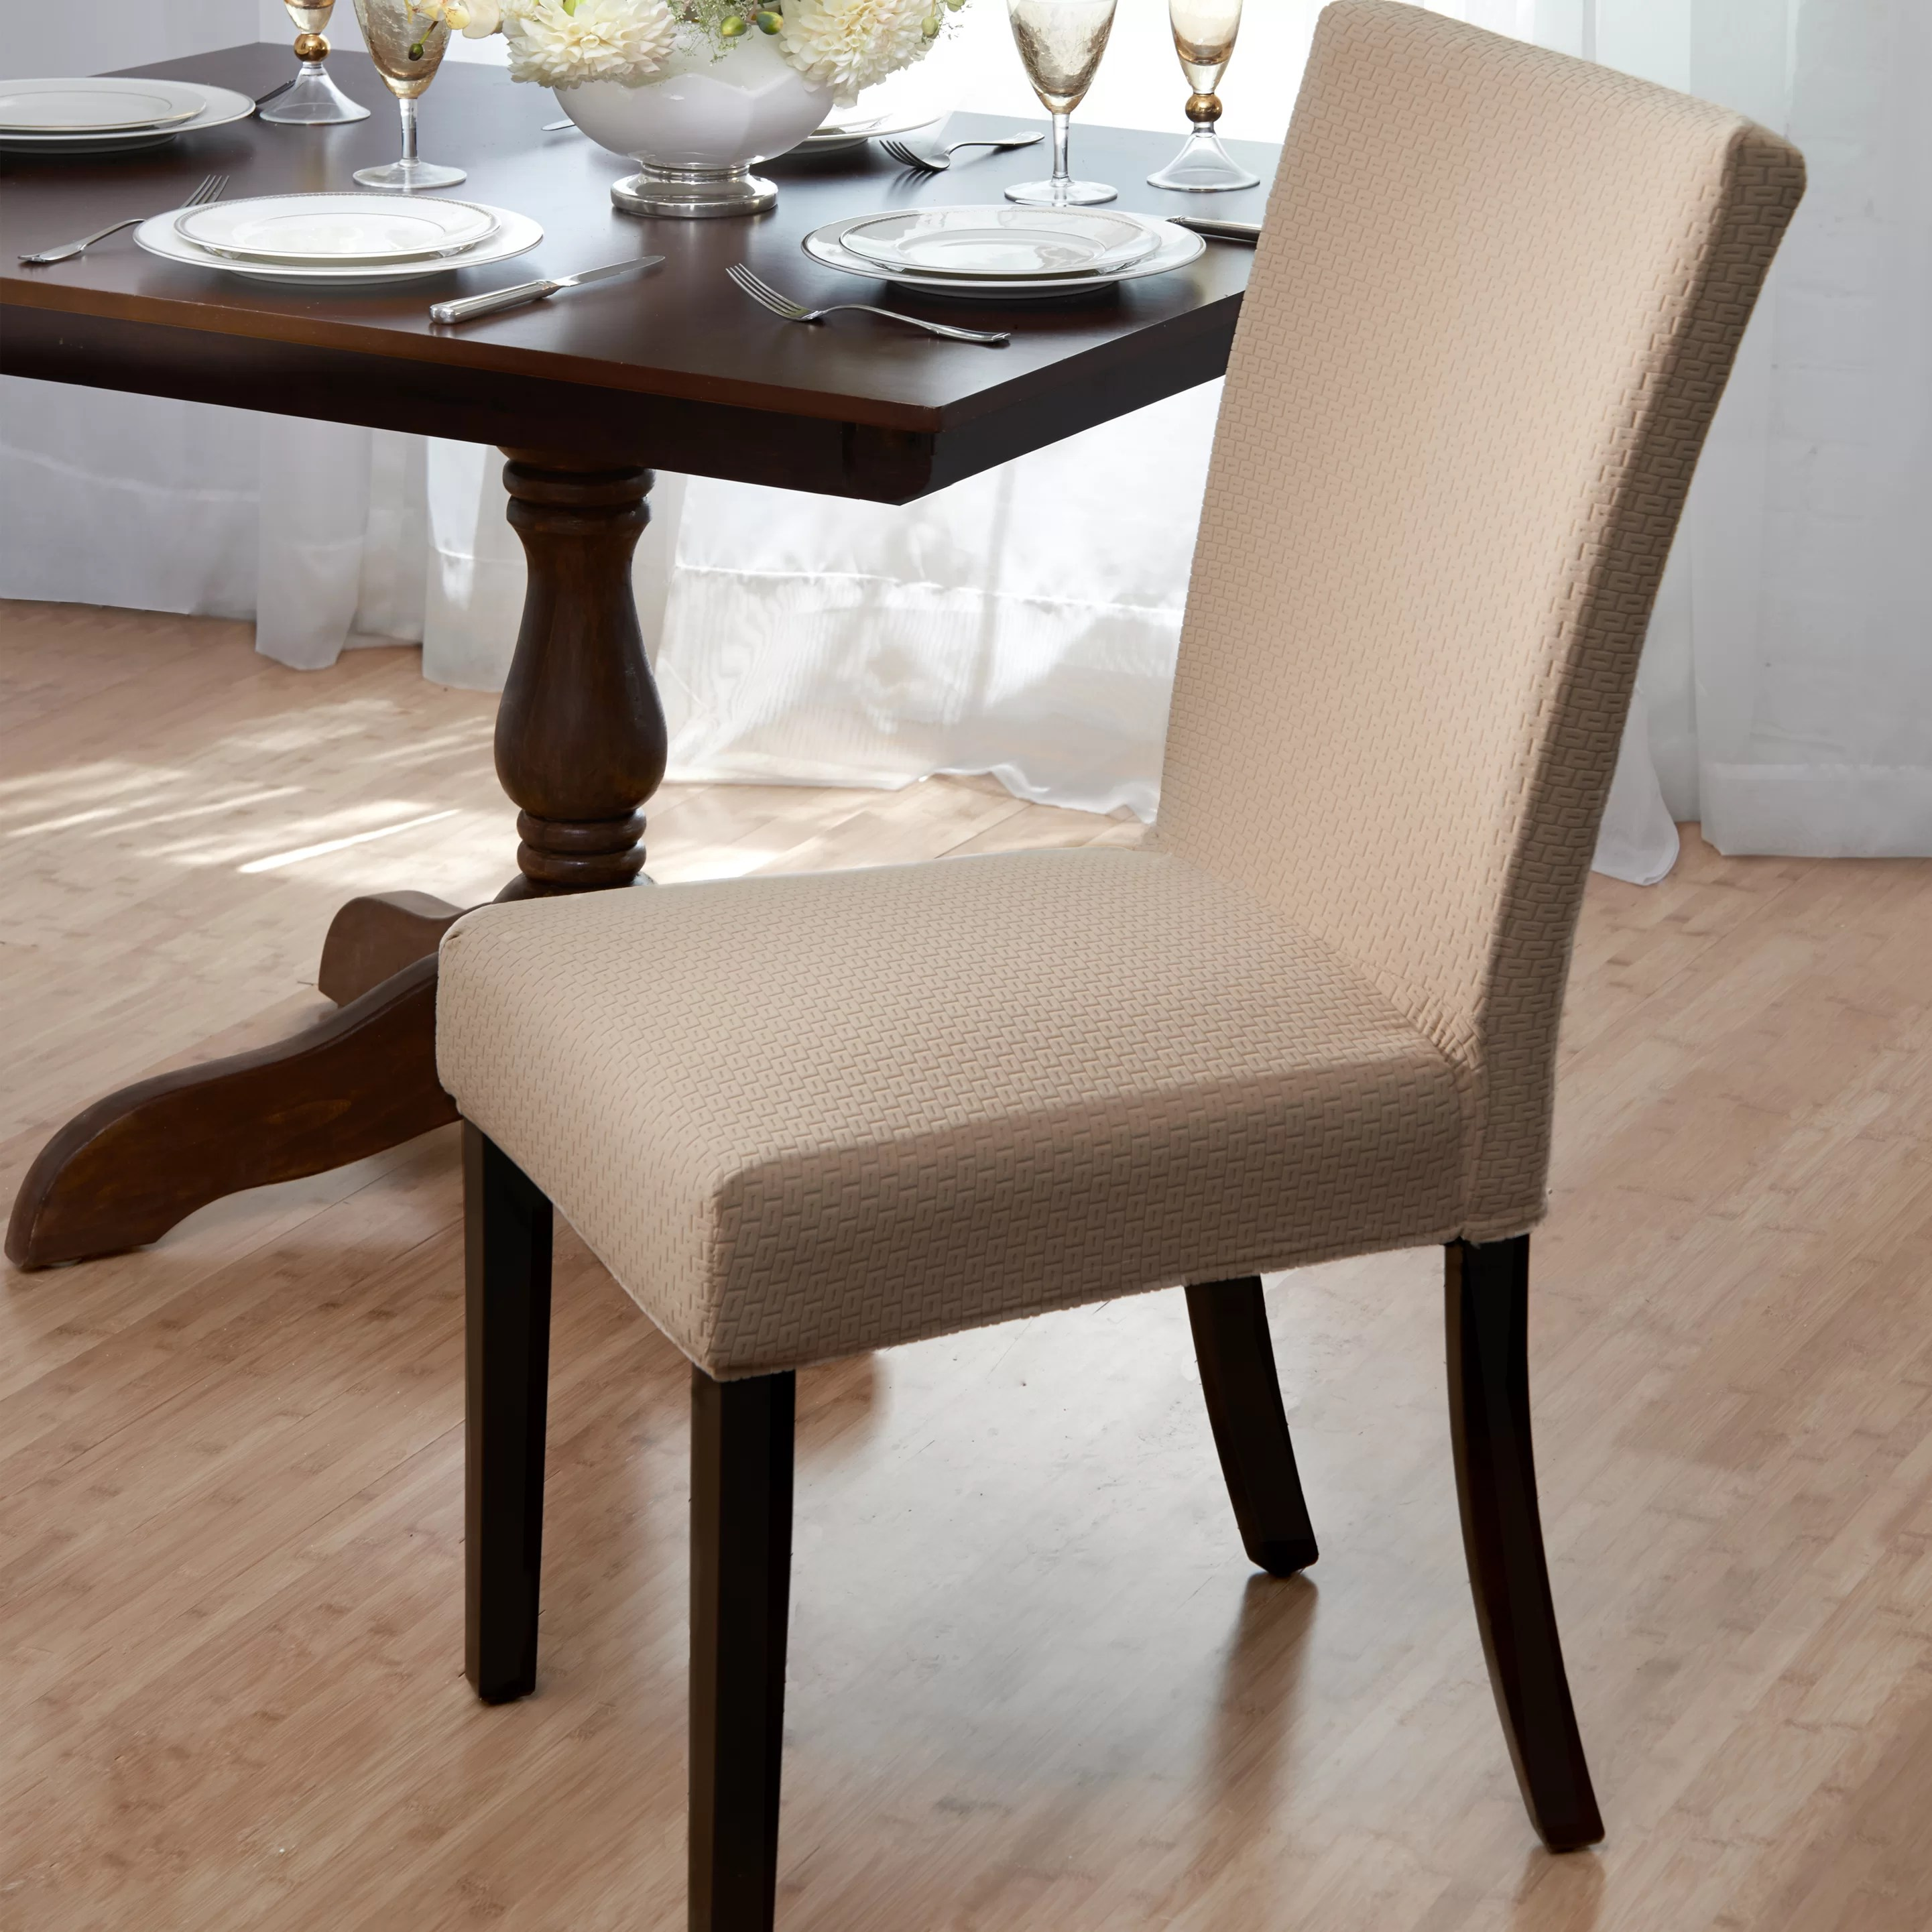 kitchen dining chair slipcovers c wayfair kitchen chairs